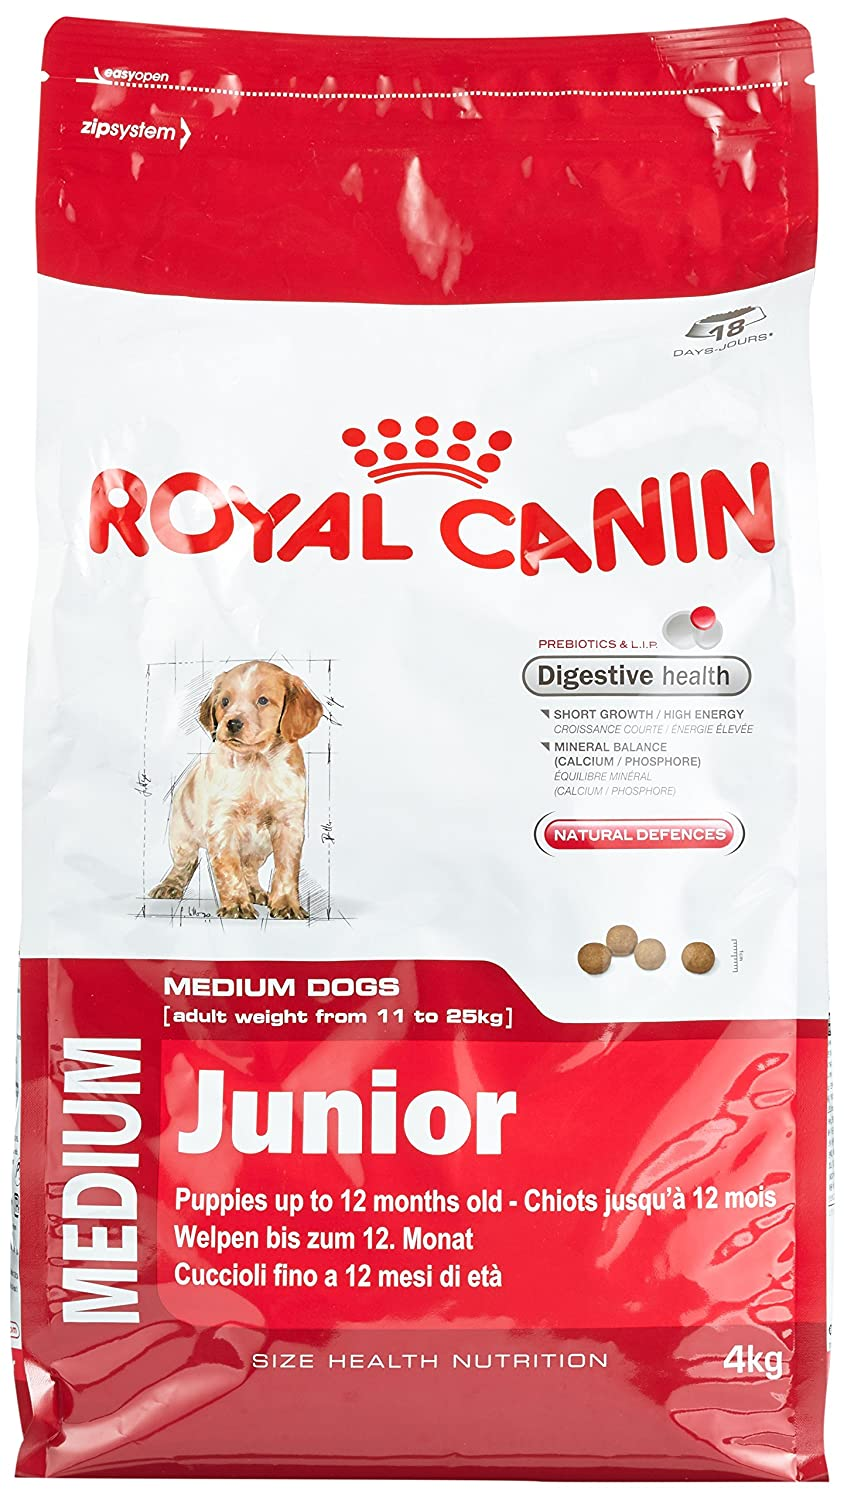 royal canin junior medium dog food diets support nutrition natural health 4 kg. Black Bedroom Furniture Sets. Home Design Ideas